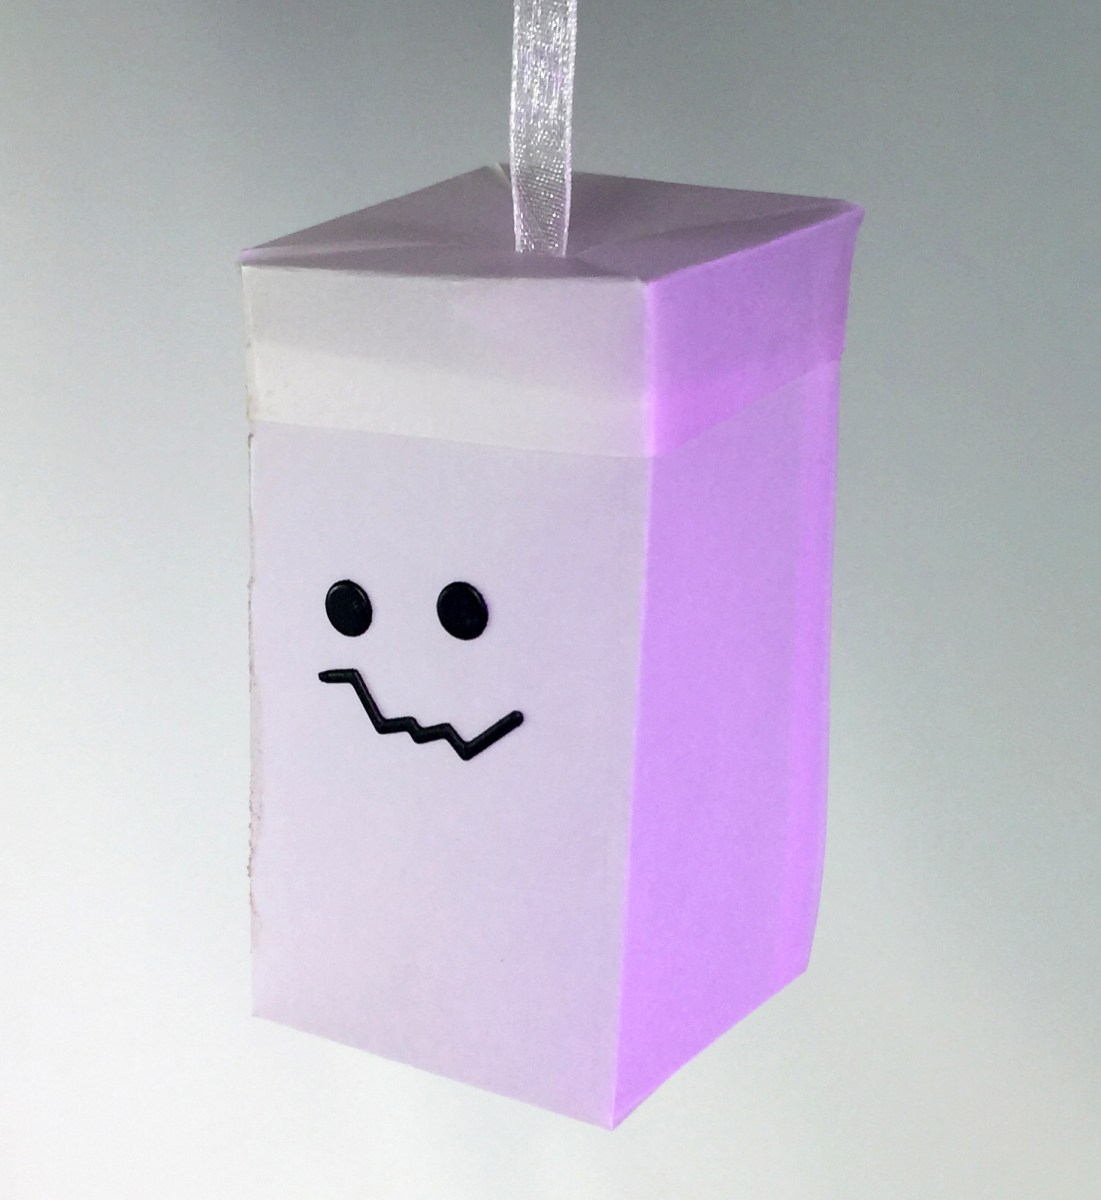 Impossible Ghost Box